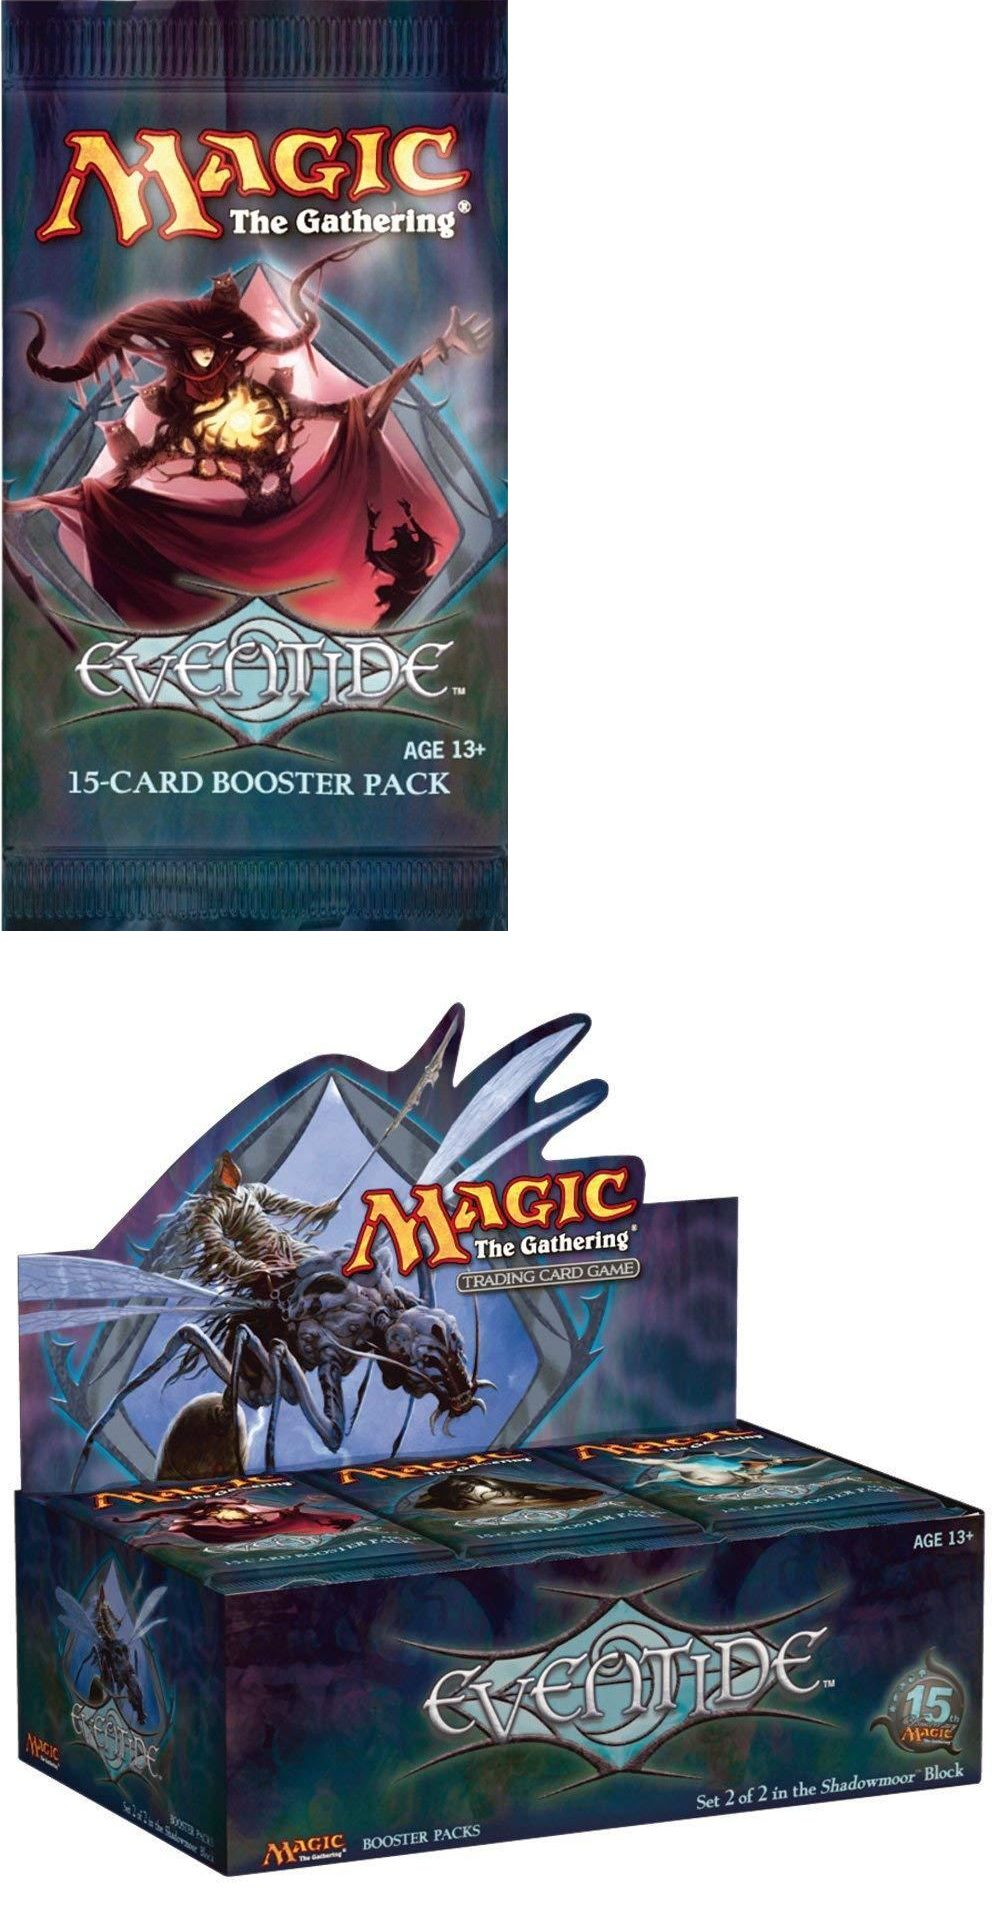 Magic the Gathering MTG 1x Eventide English Booster Pack x1 New 21x Available